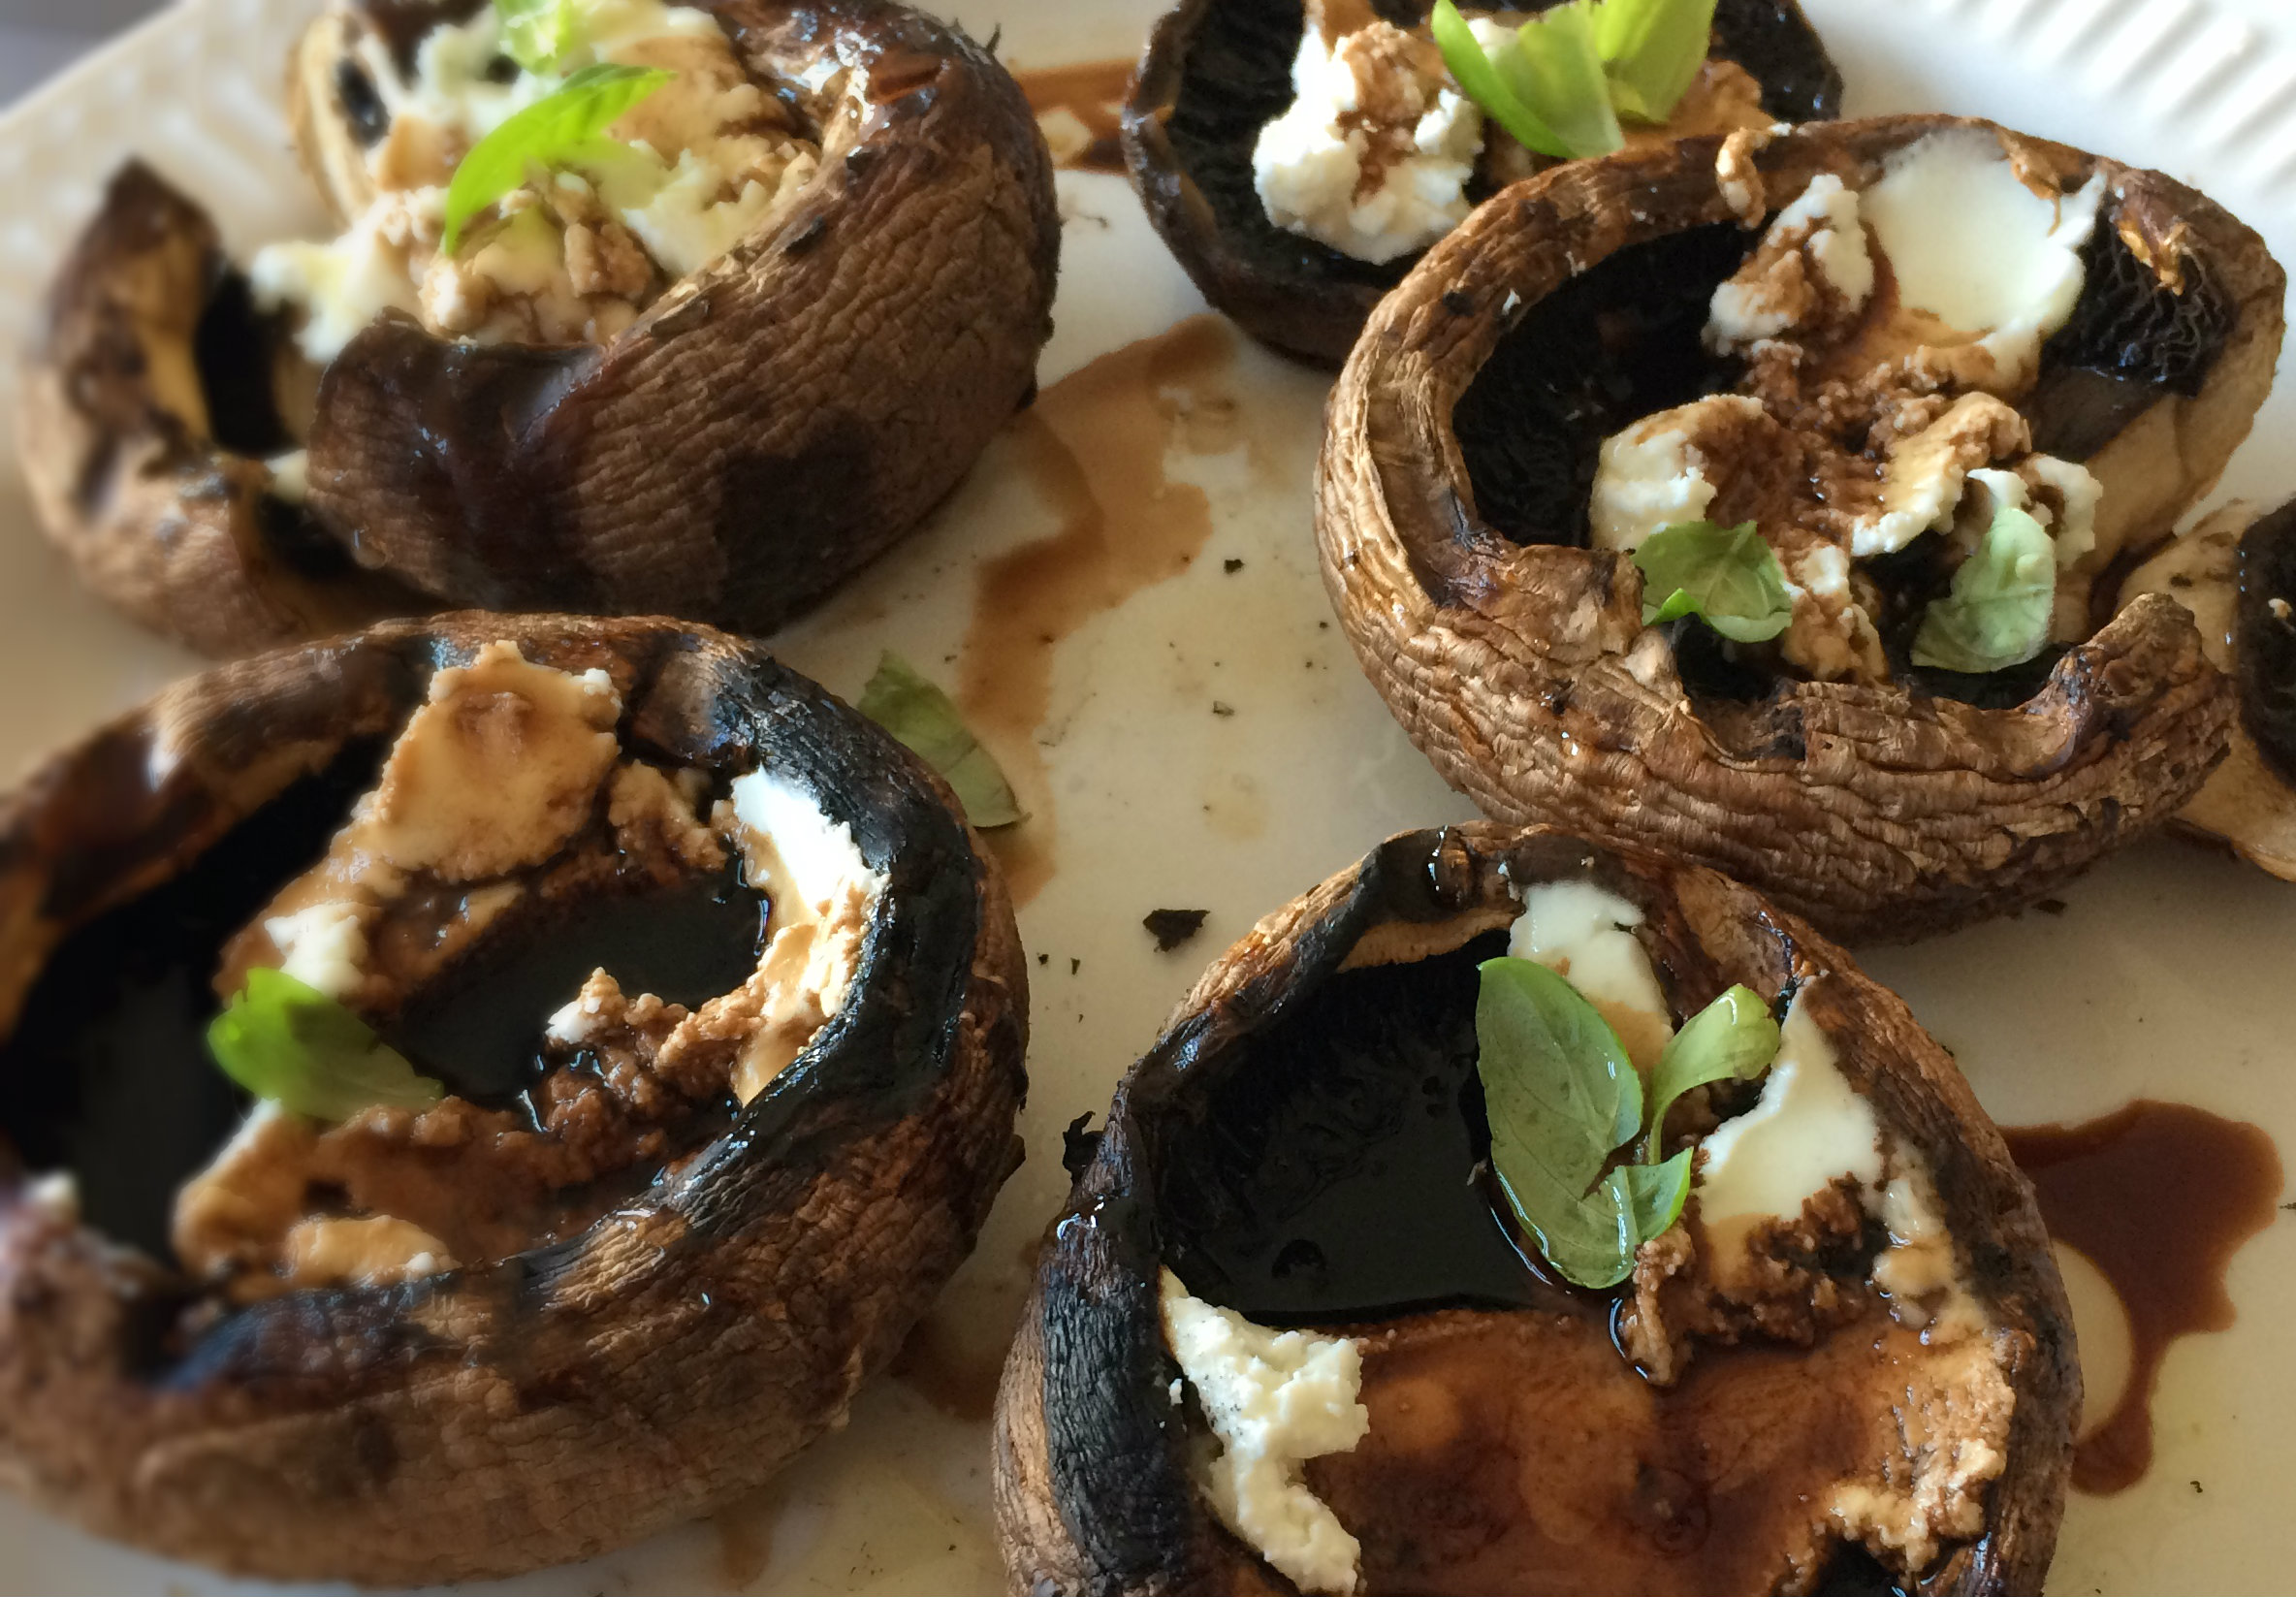 Ingredients: portabello mushrooms, goat cheese, fresh basil, balsamic ...